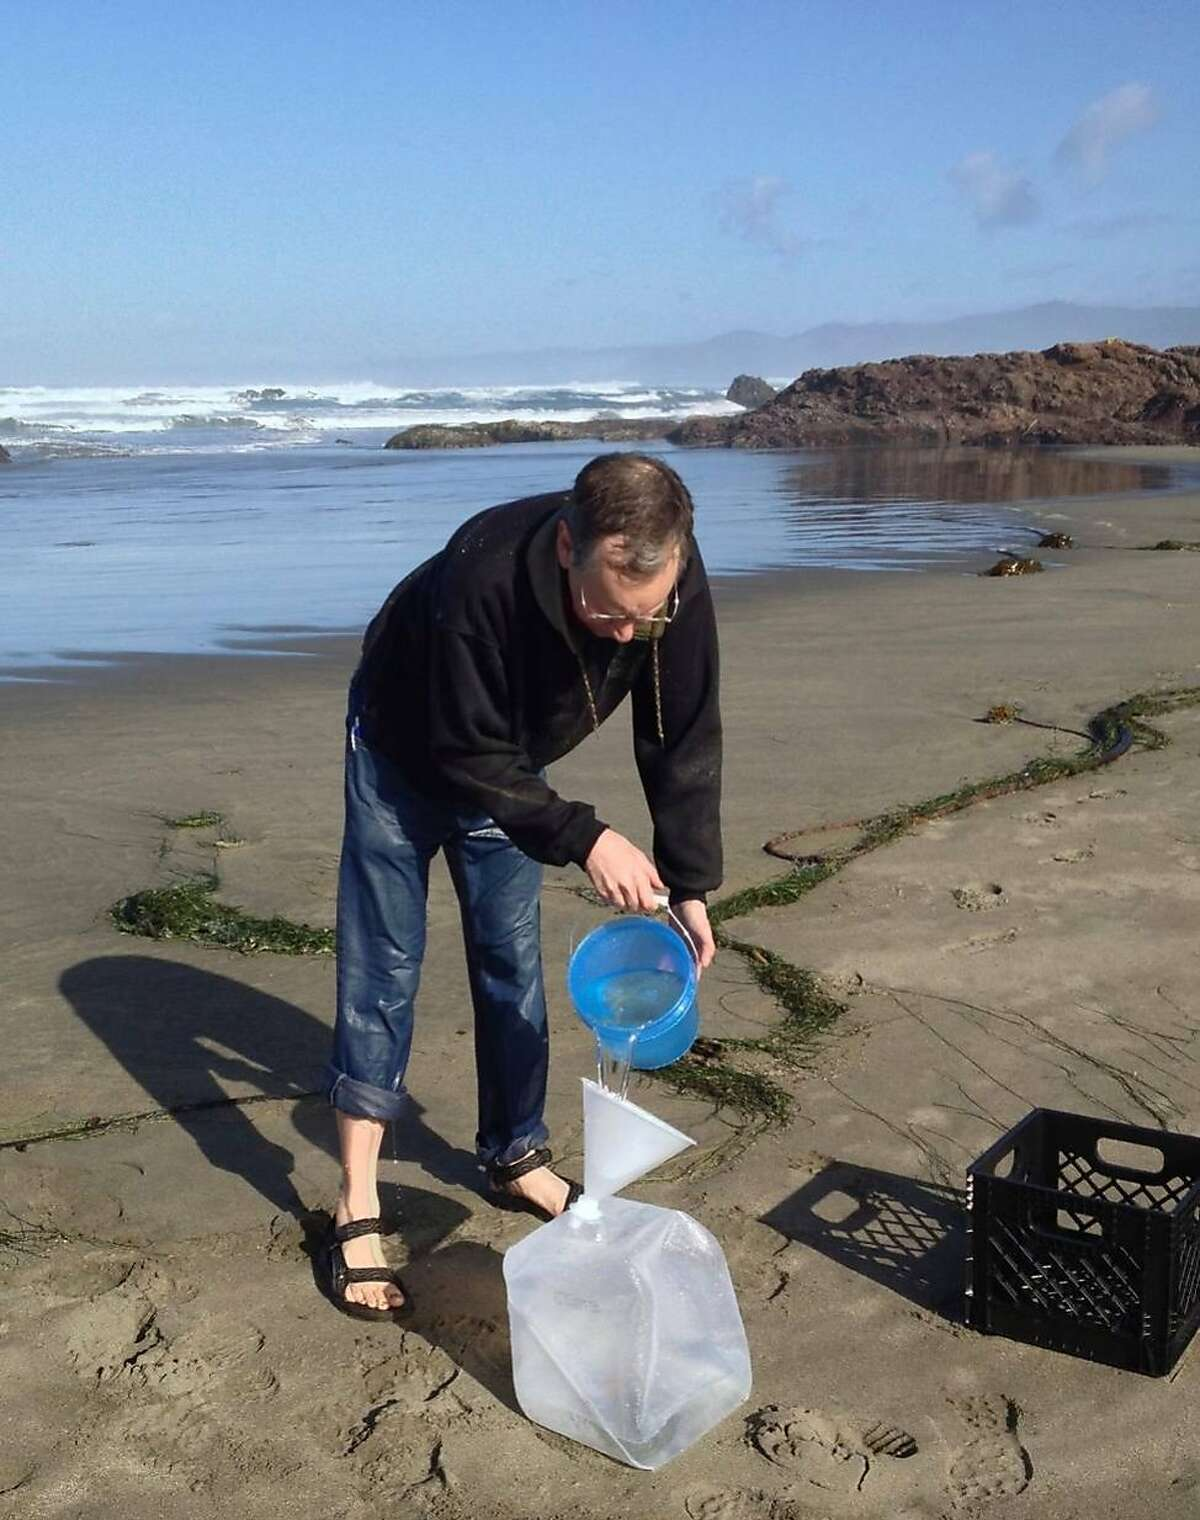 Dr. Roger Gilbert collects seawater near Fort Bragg in an effort to monitor for radiation contamination.